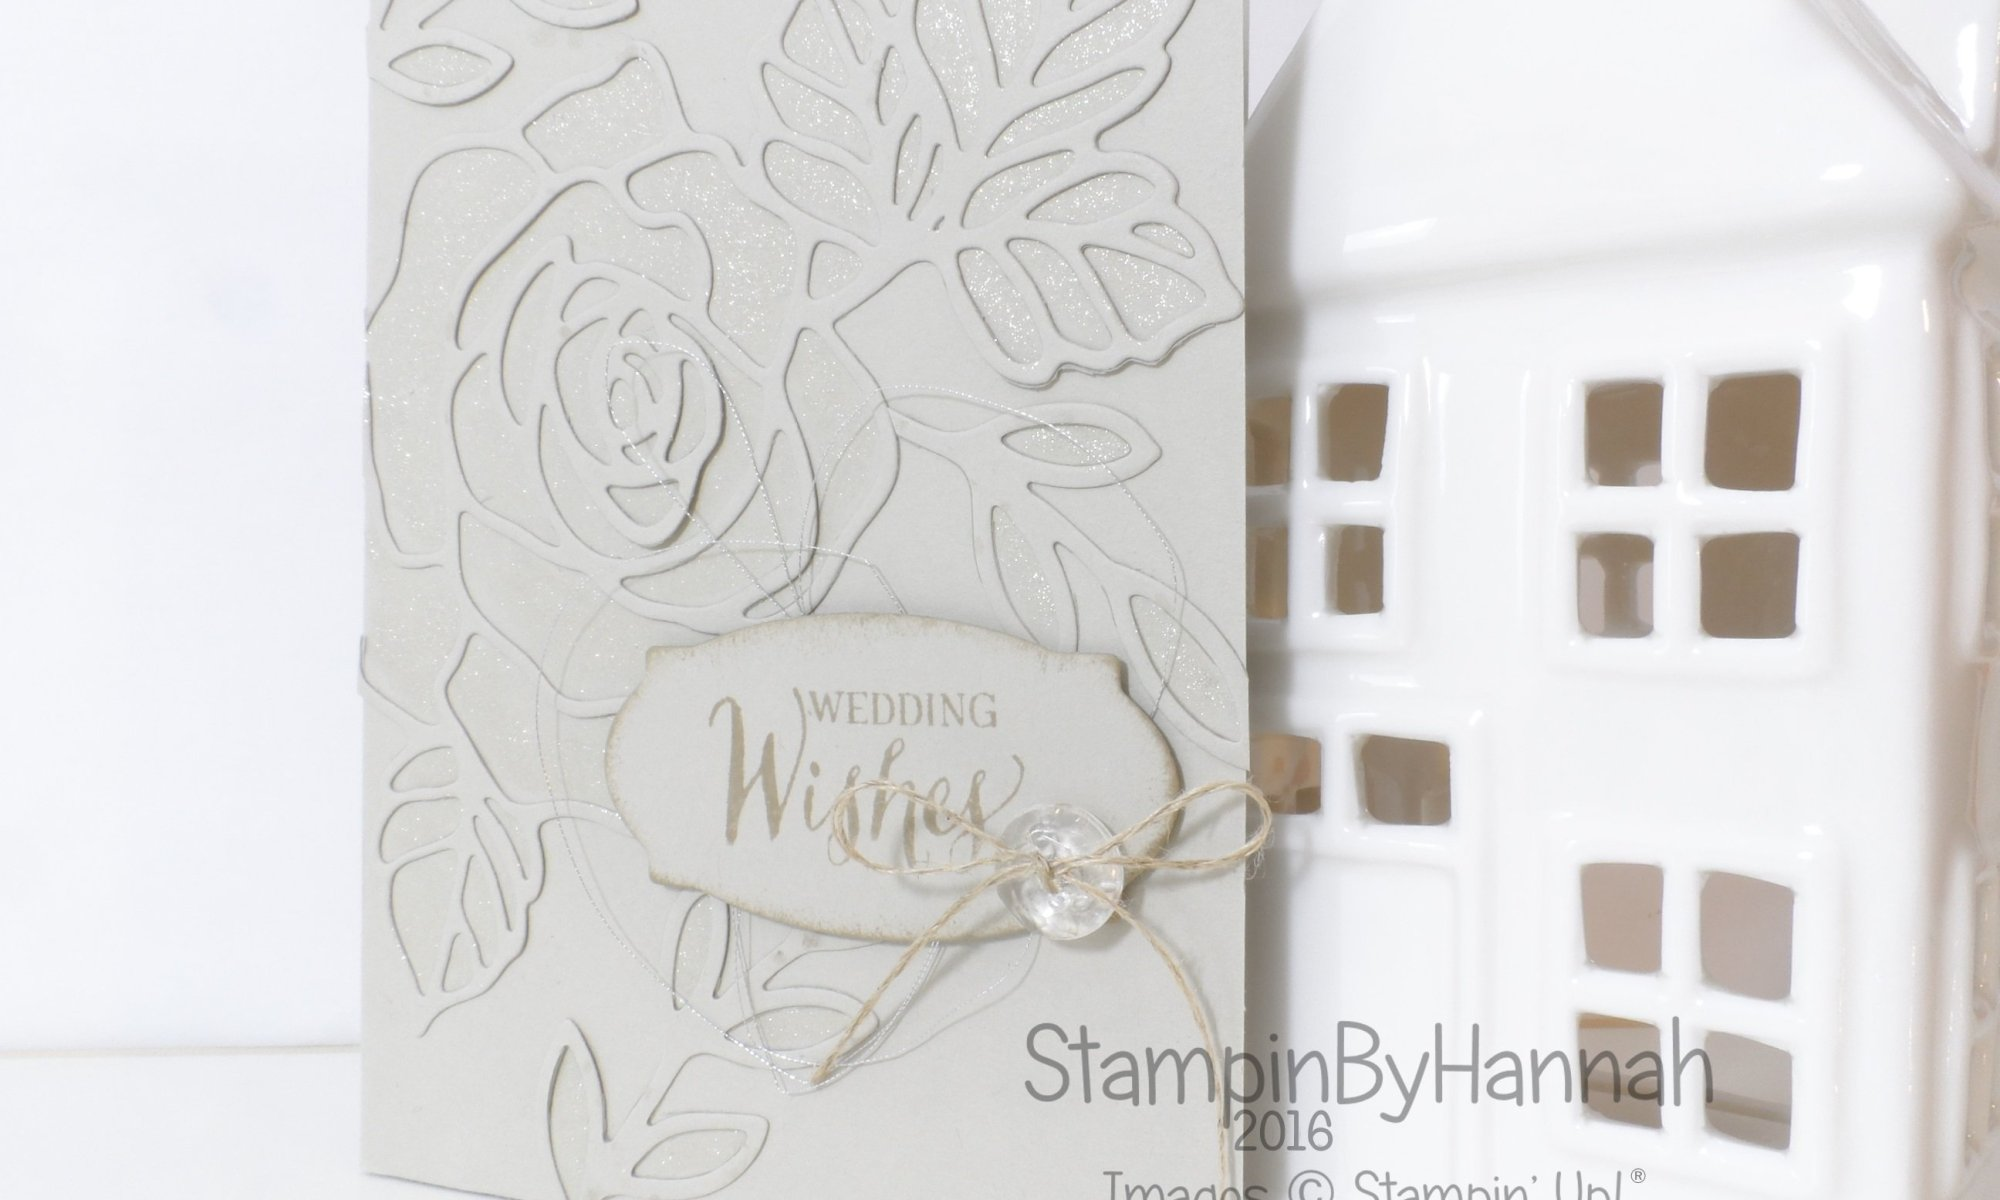 Stampin' Up! UK Rose Wonder Wedding Card